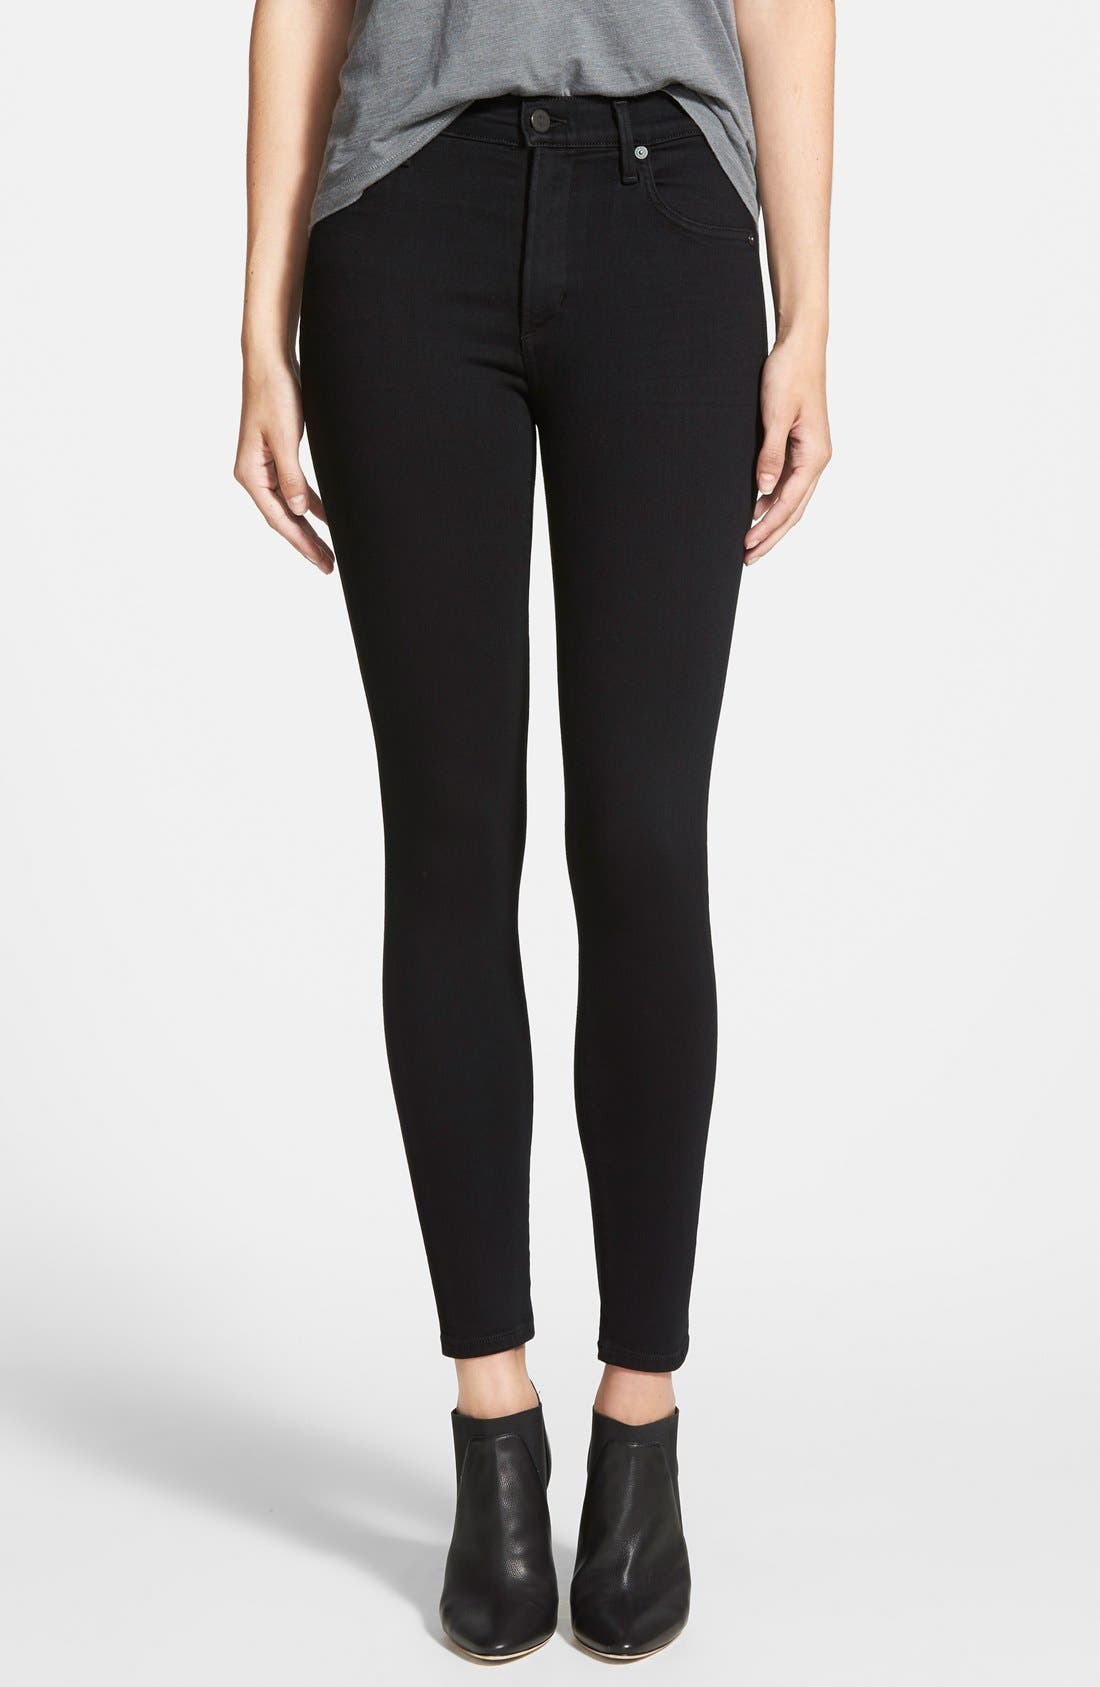 'Rocket' High Rise Skinny Jeans,                         Main,                         color,